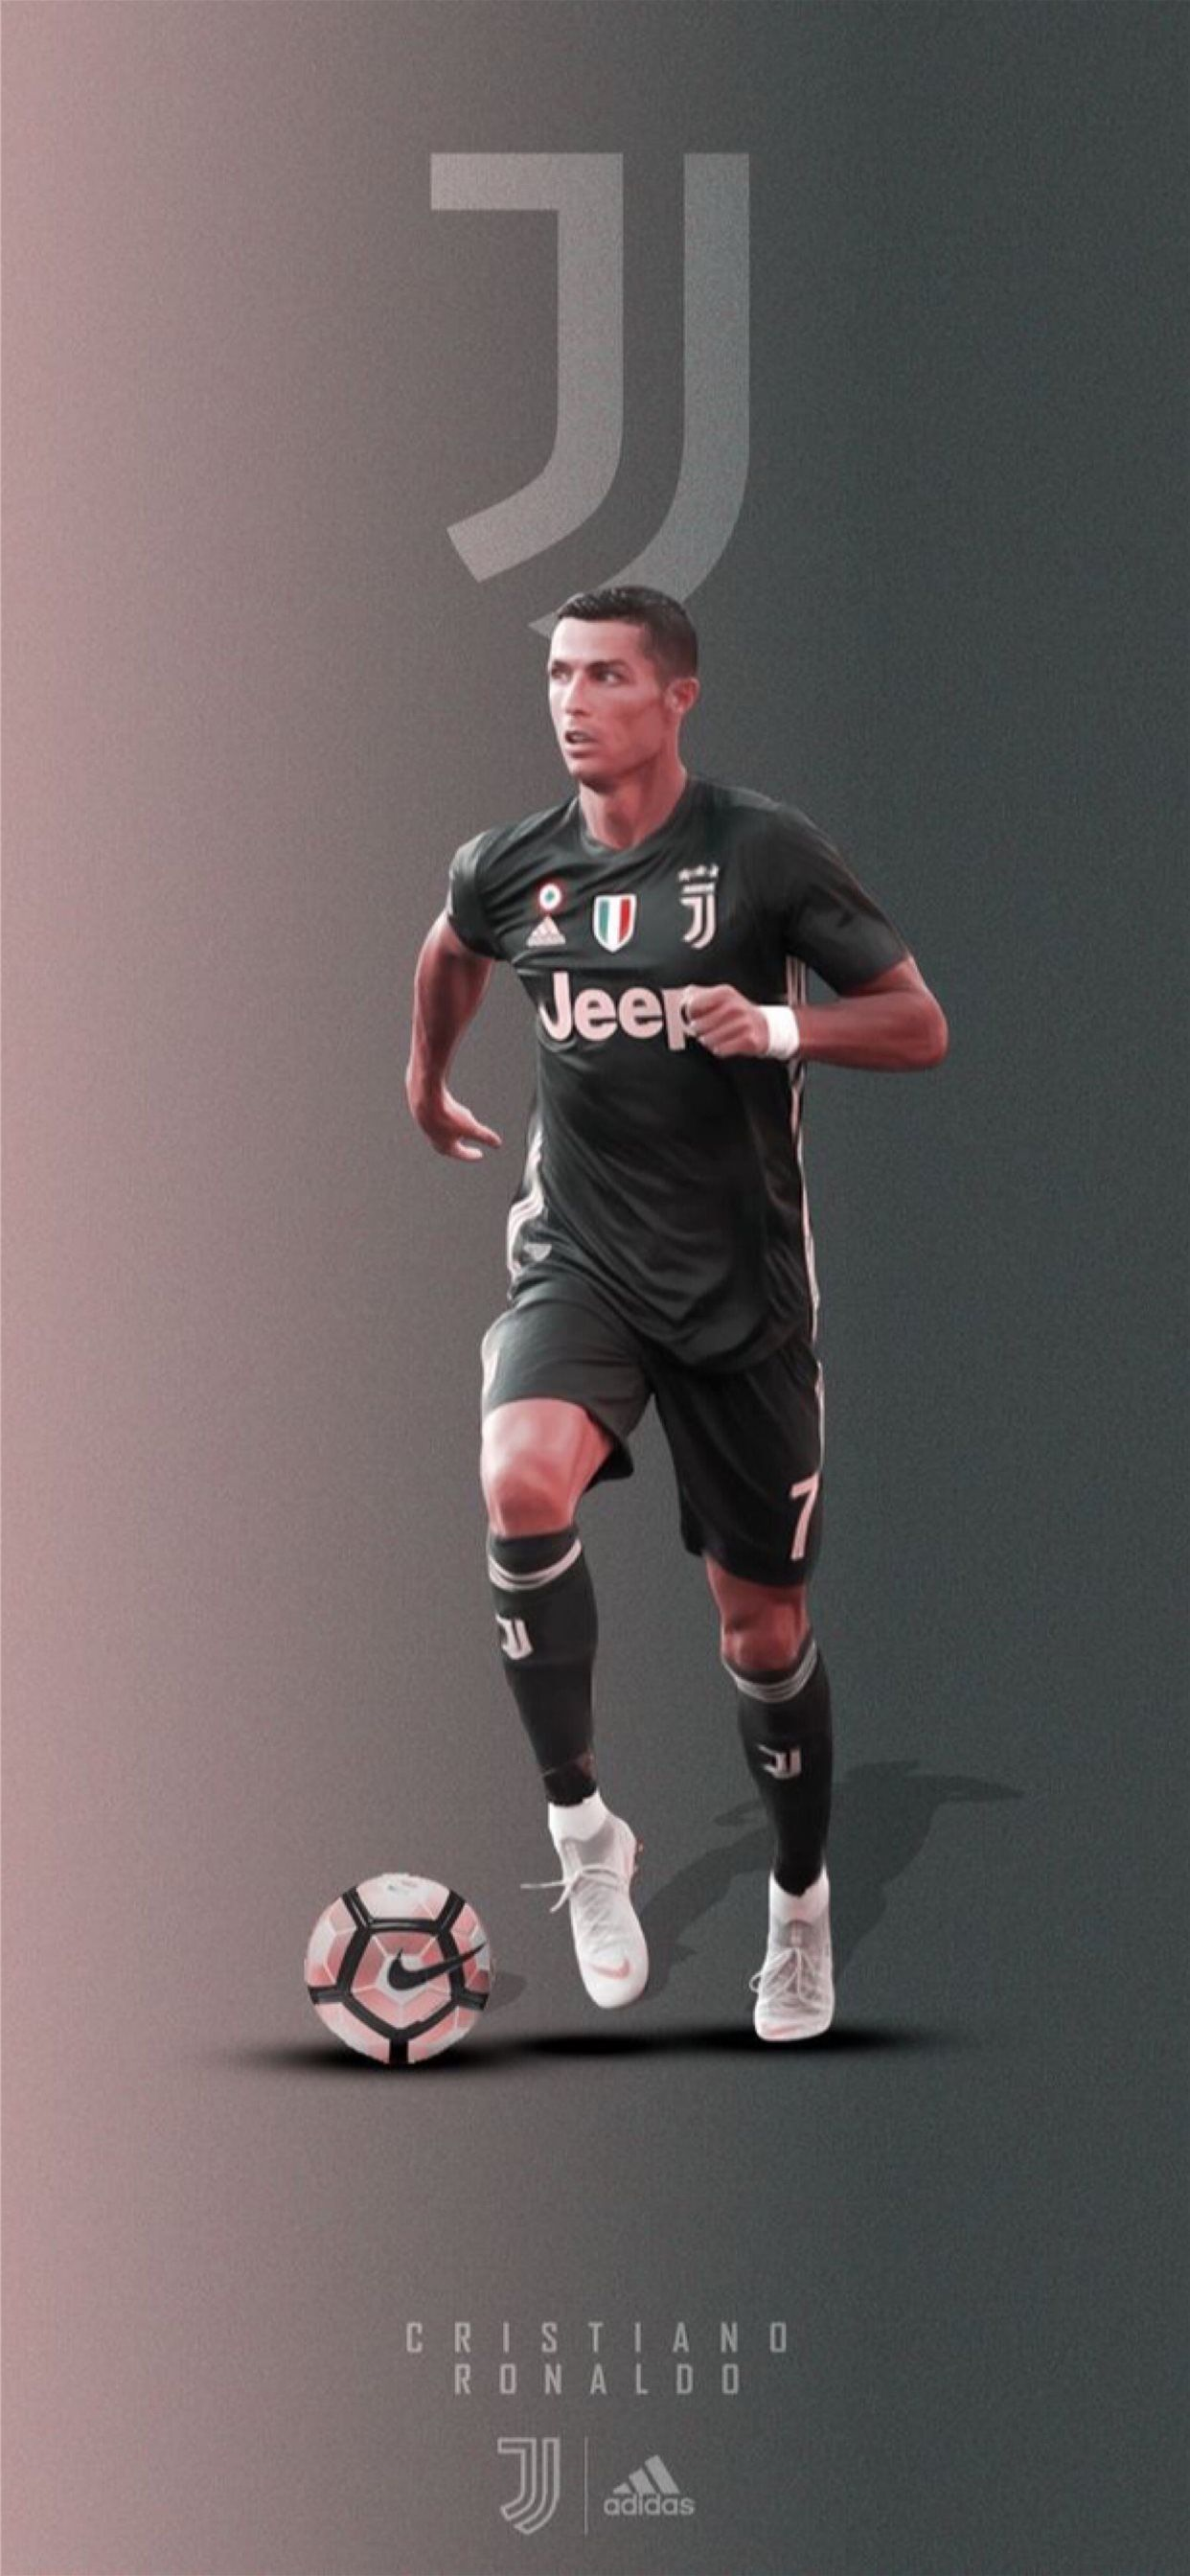 Cristiano Ronaldo For Iphone Wallpapers Wallpaper Cave